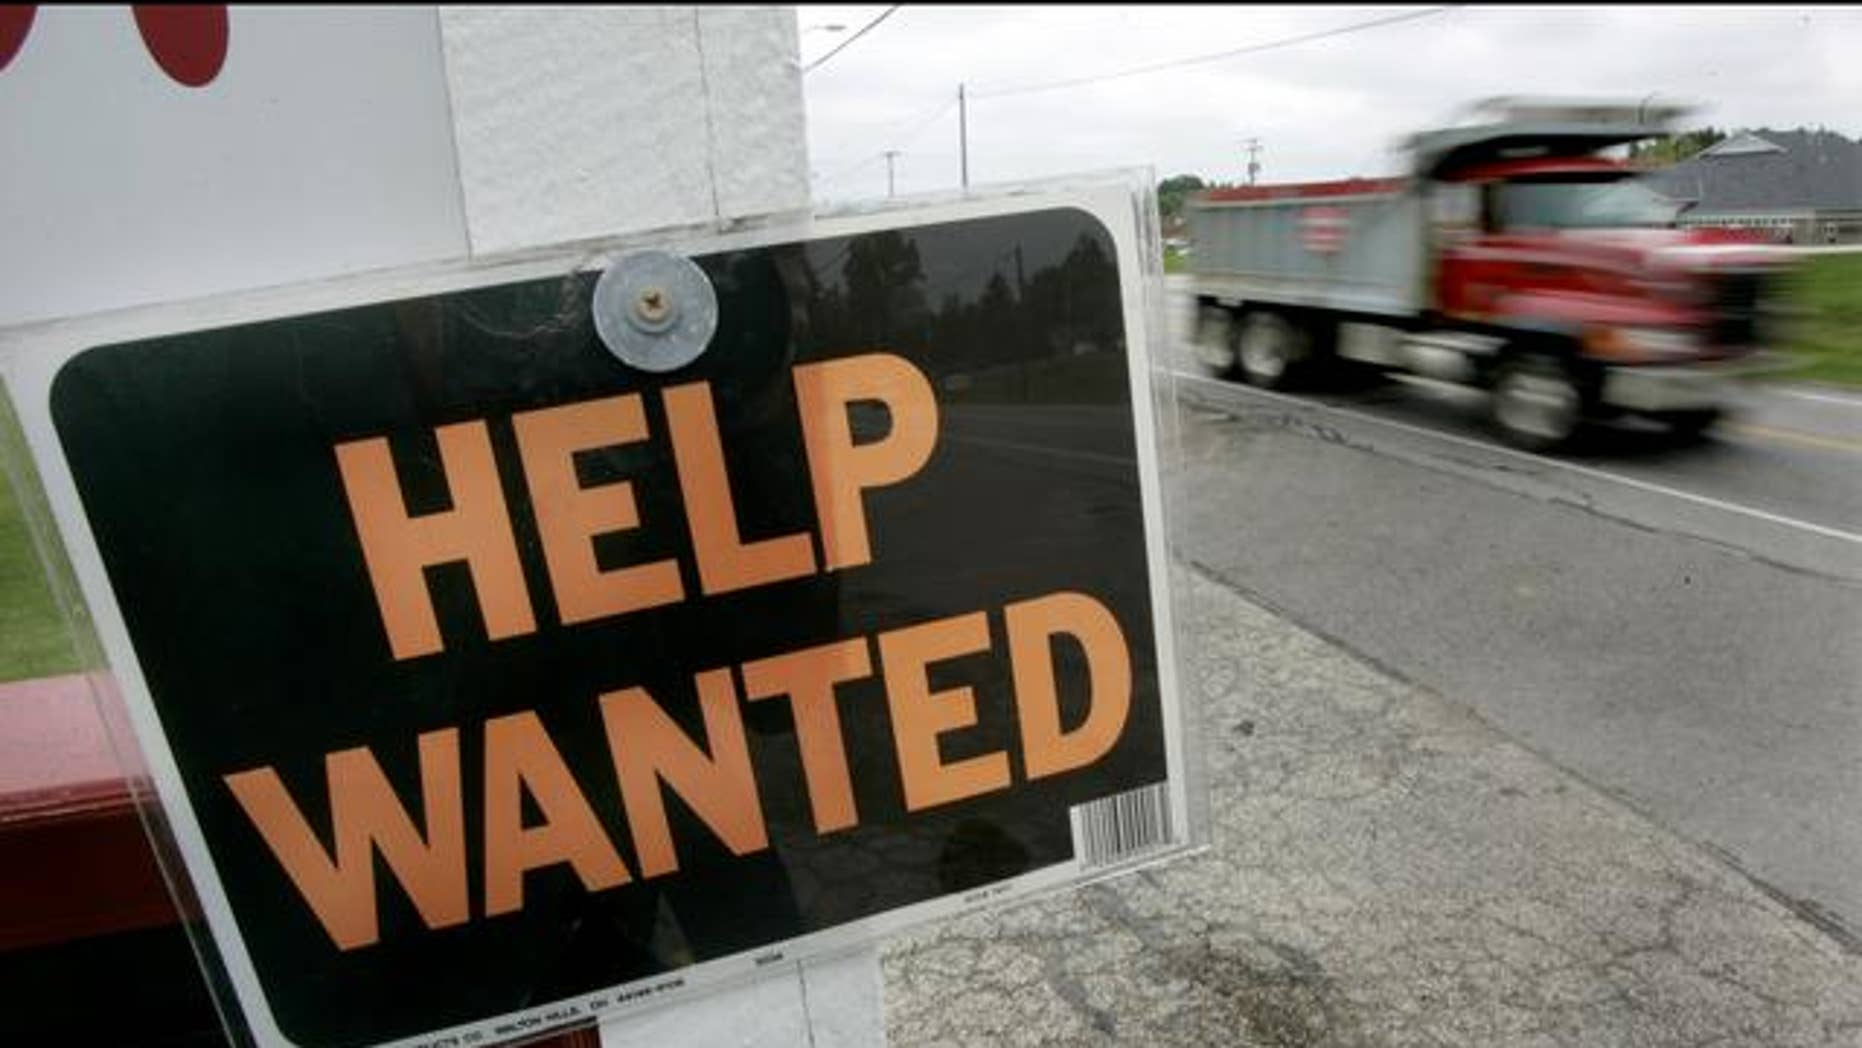 A landscaping company looks for help with a sign hung along a busy roadway in Chesterland, Ohio on Friday, June 3, 2005. Job growth slowed nearly to a crawl in May, with new hiring registering the smallest gain in two years, the Labor Department reported Friday.(AP Photo/Amy Sancetta)